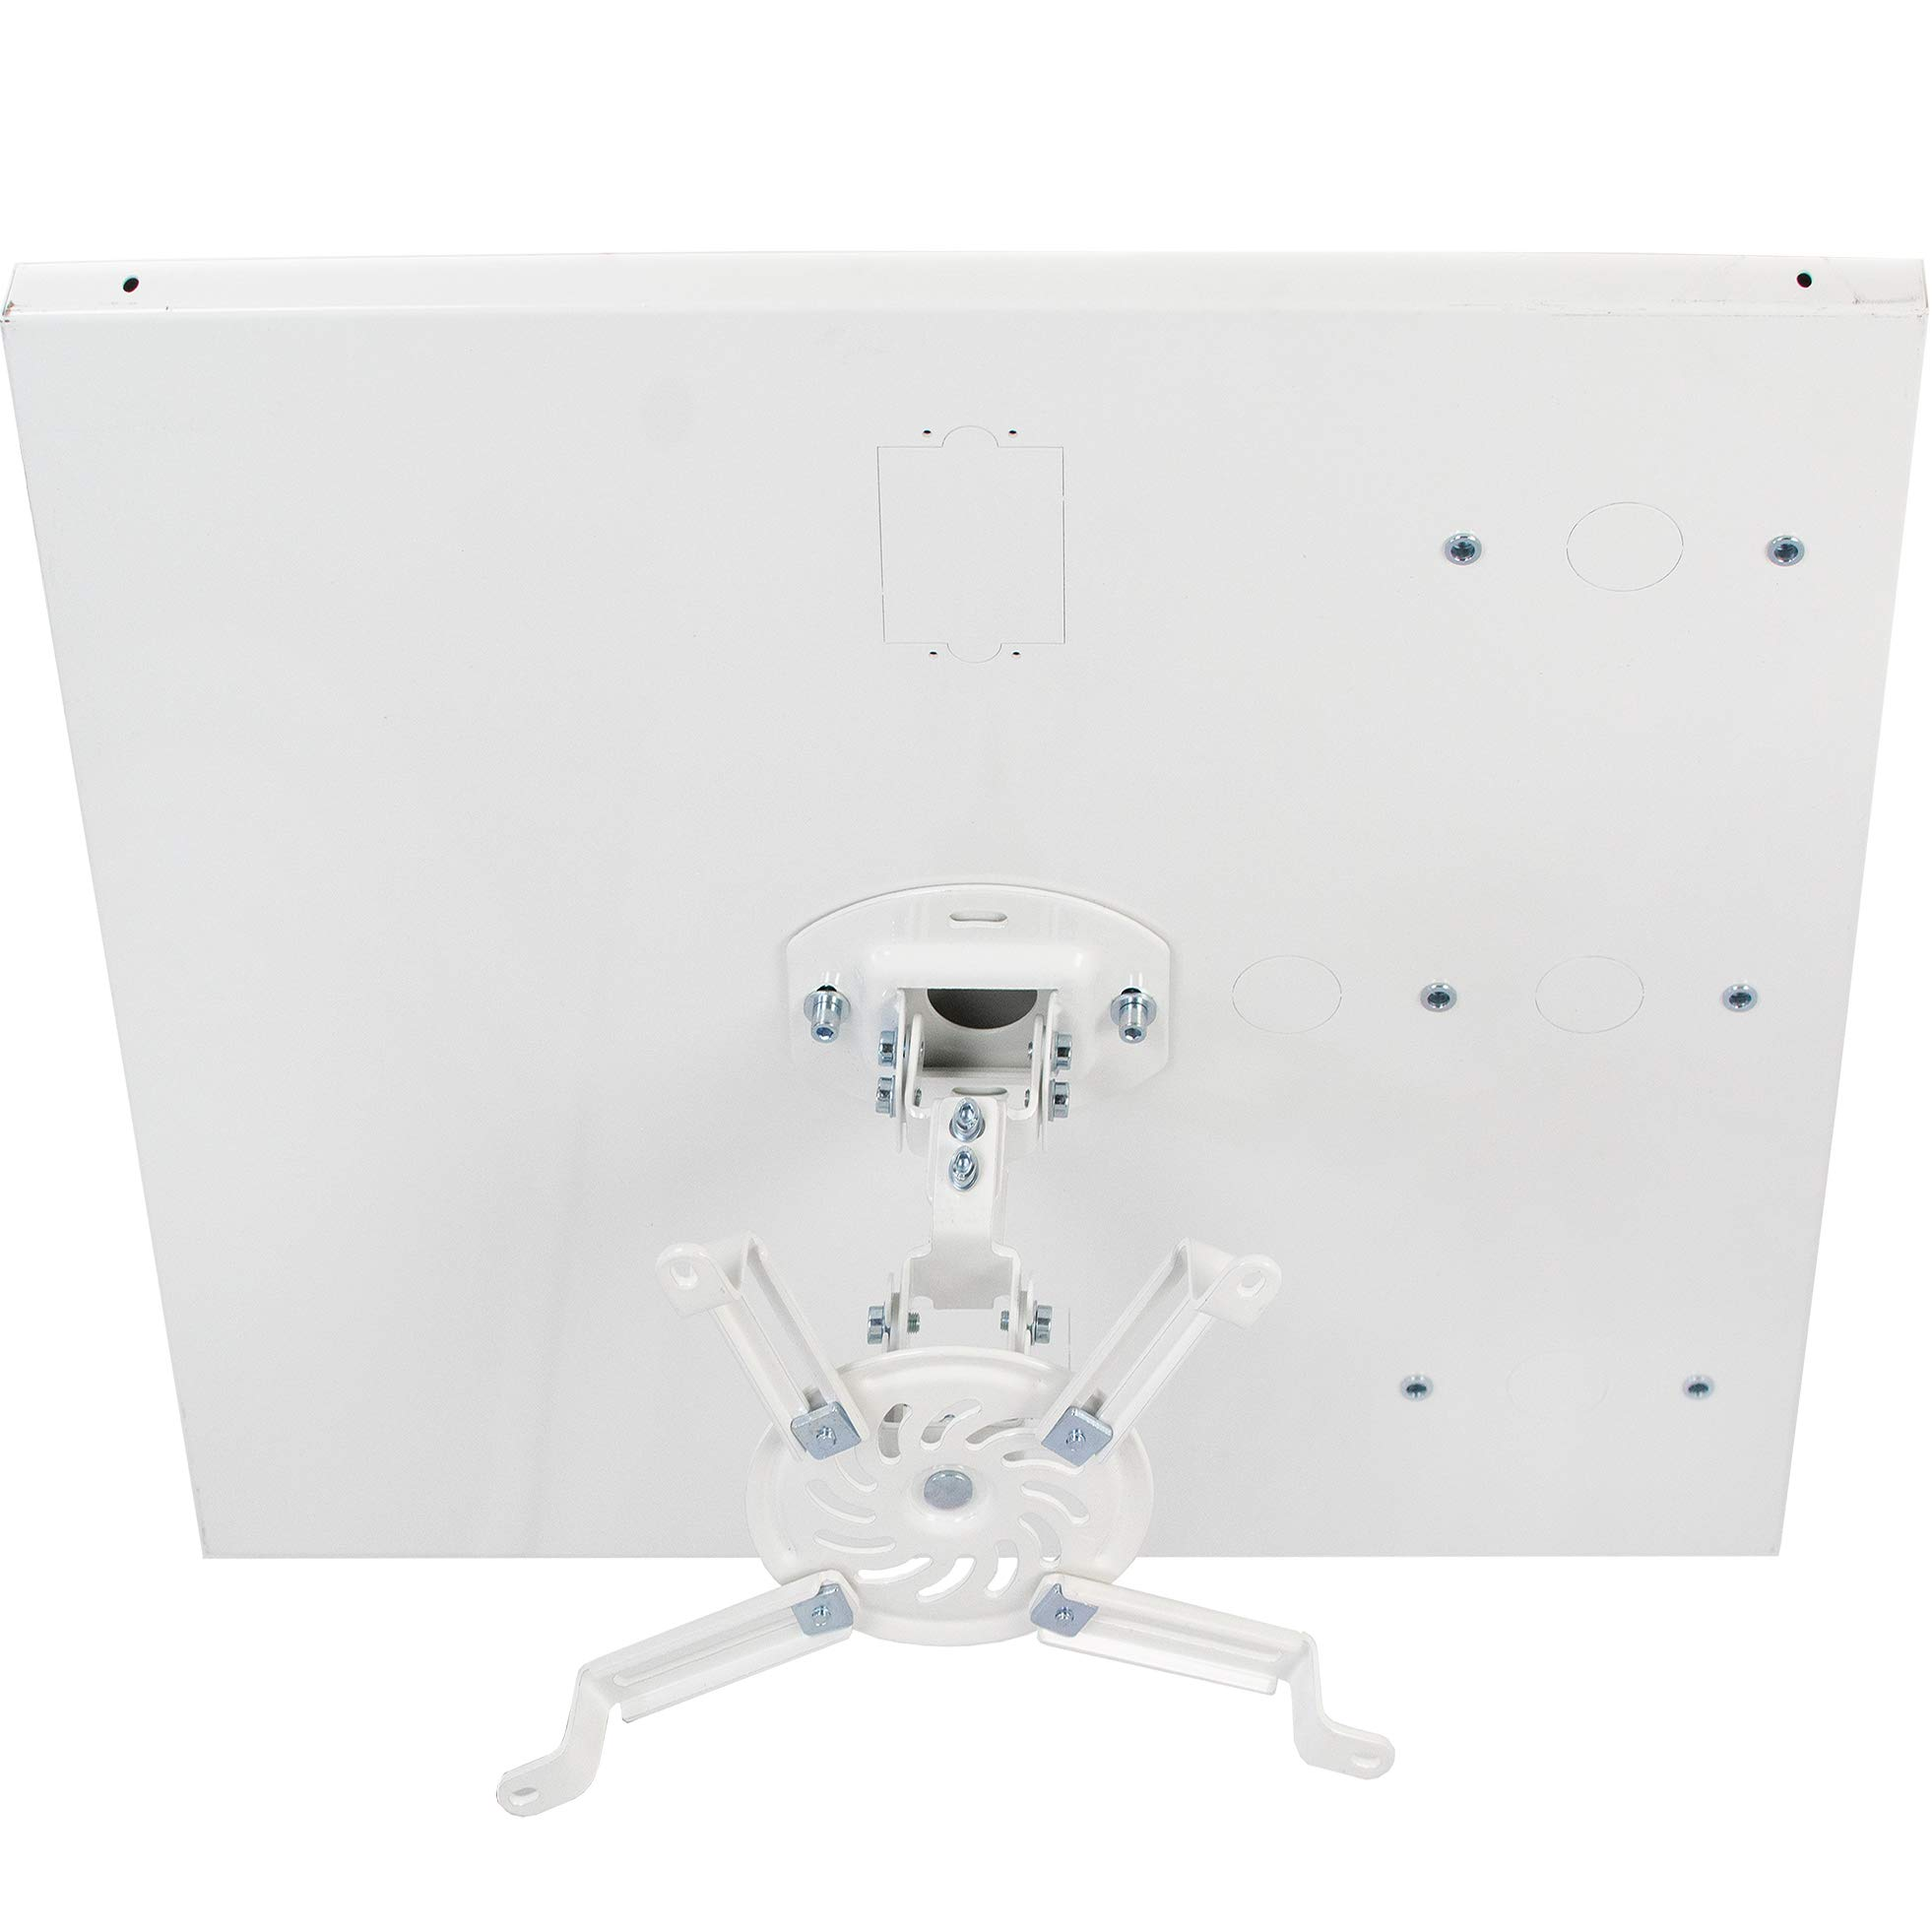 VIVO Universal White Adjustable 2 x 2 feet Drop Ceiling Projector Mount | Suspended Drop-in Ceiling Projection Mounting Kit (MOUNT-VP07DP) by VIVO